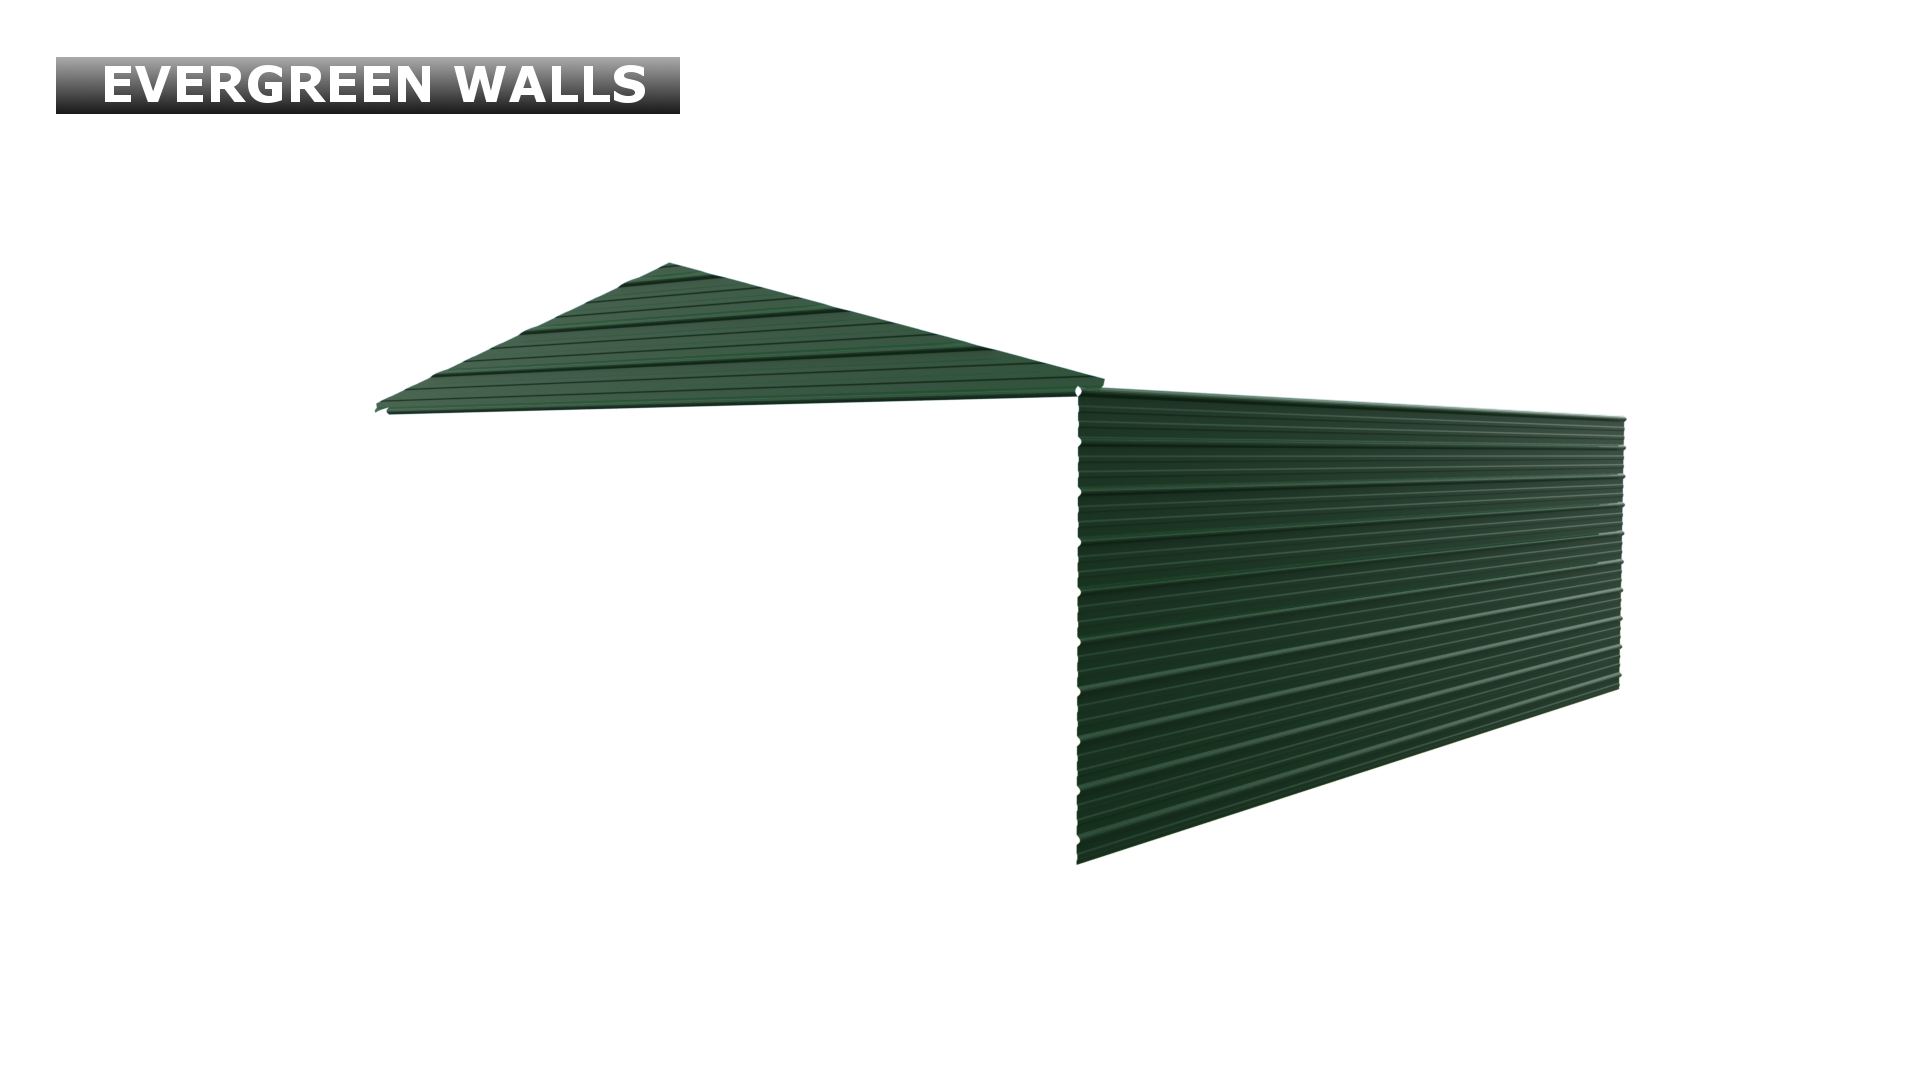 EVERGREEN WALLS